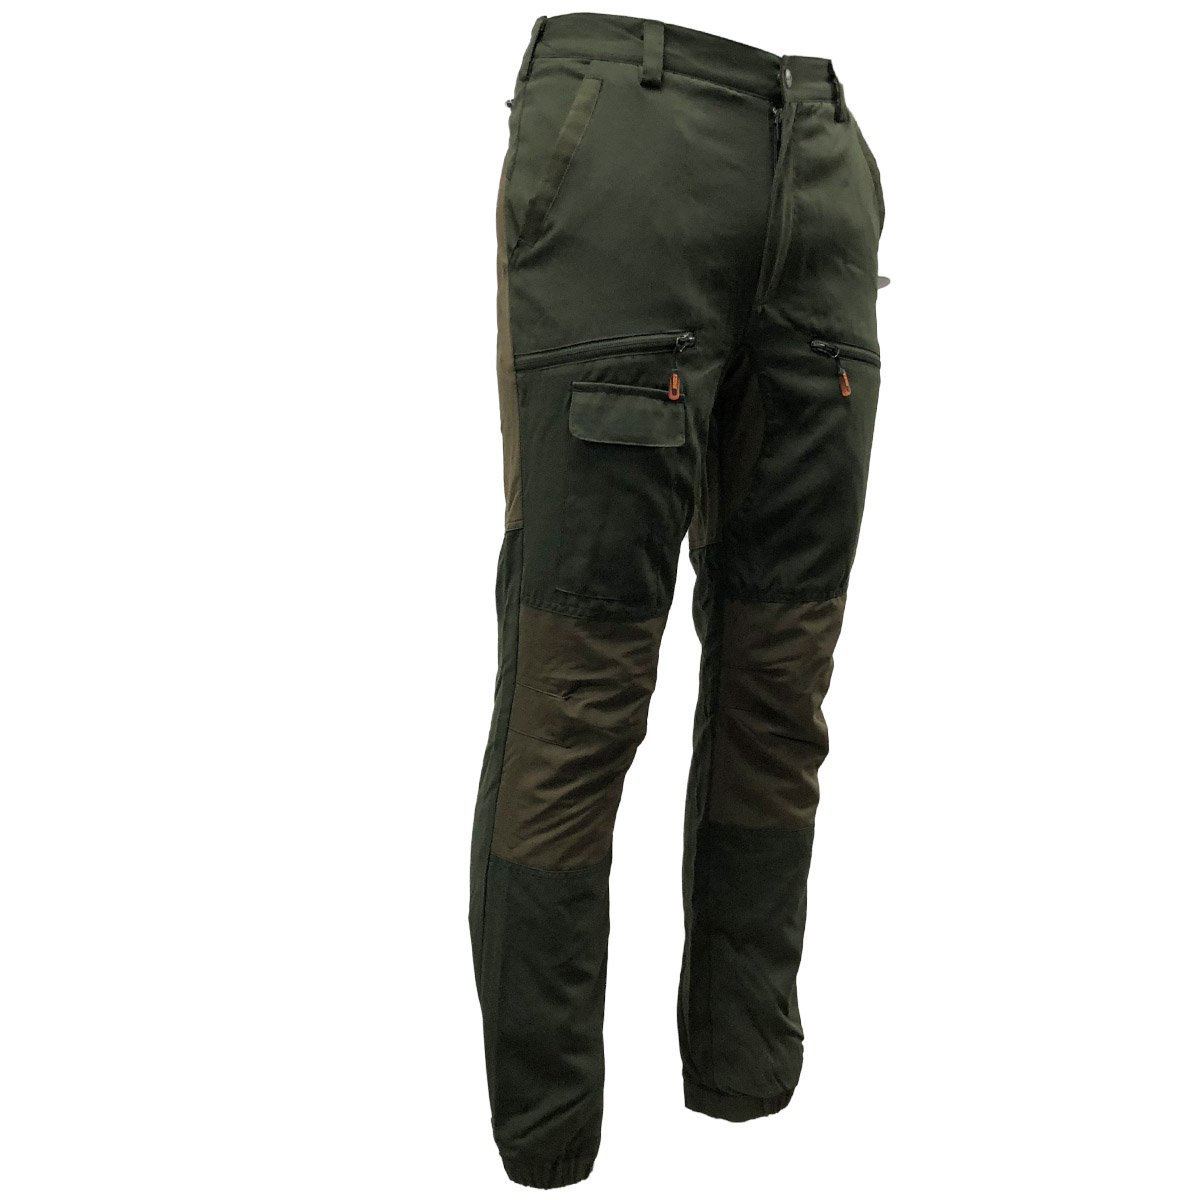 Game Technical Apparel Men's Trouser and Jacket T_HB848 - Trousers - 44